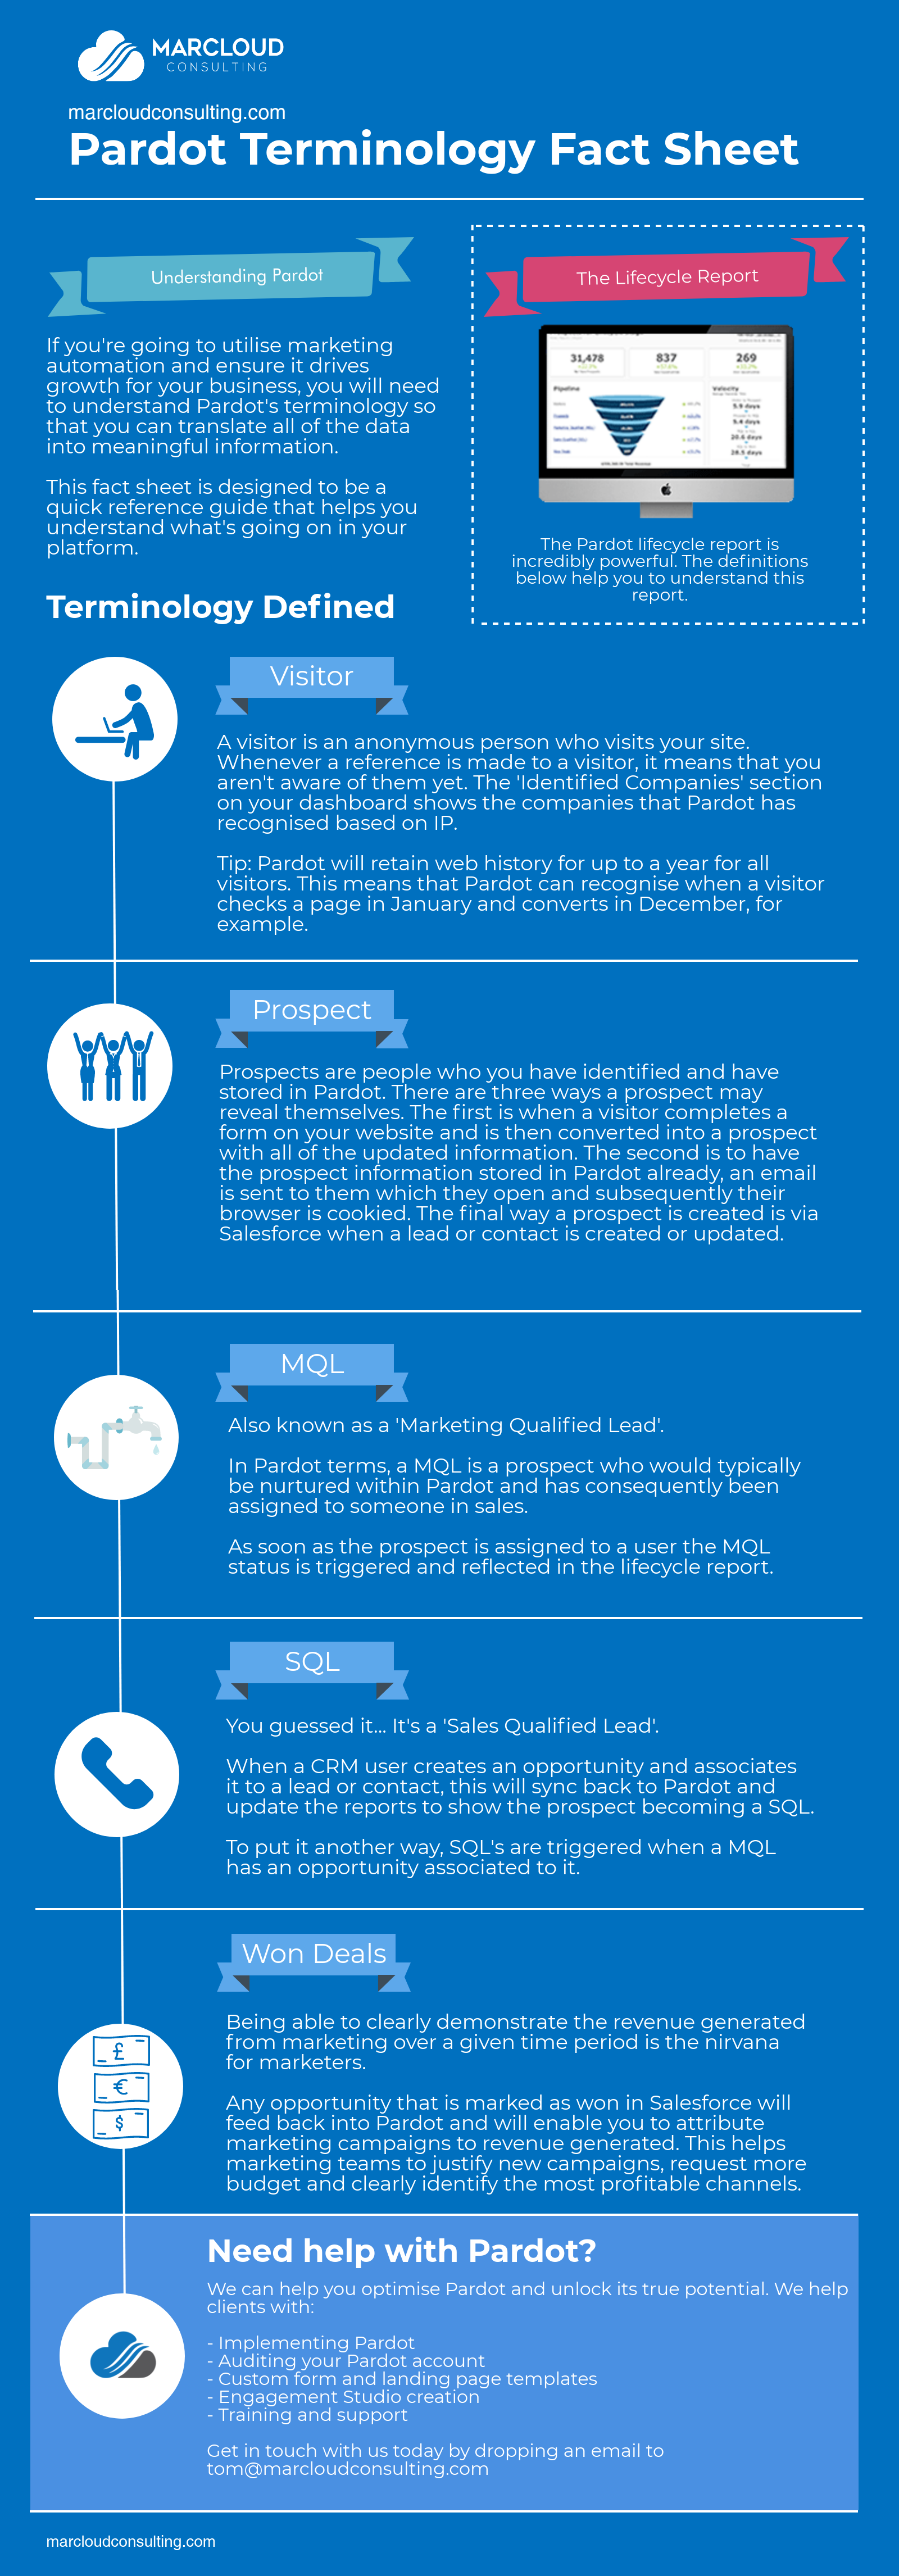 Pardot infographic lifecycle report